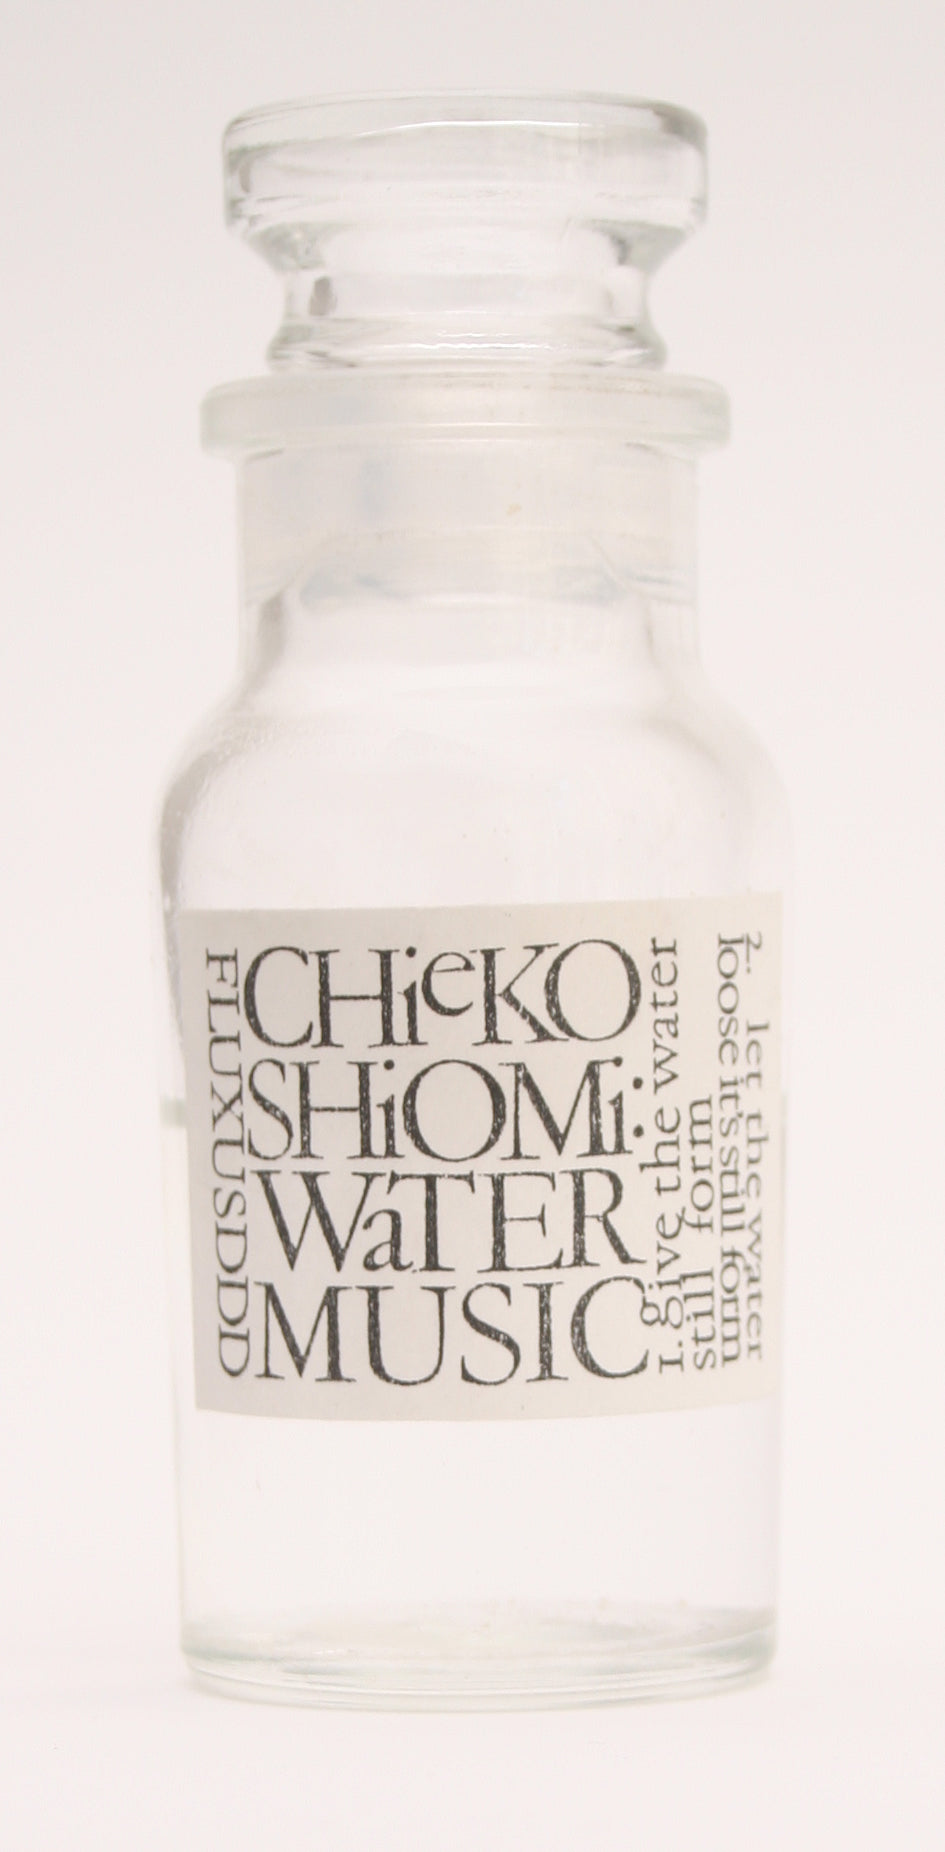 Water Music by Mieko Shiomi